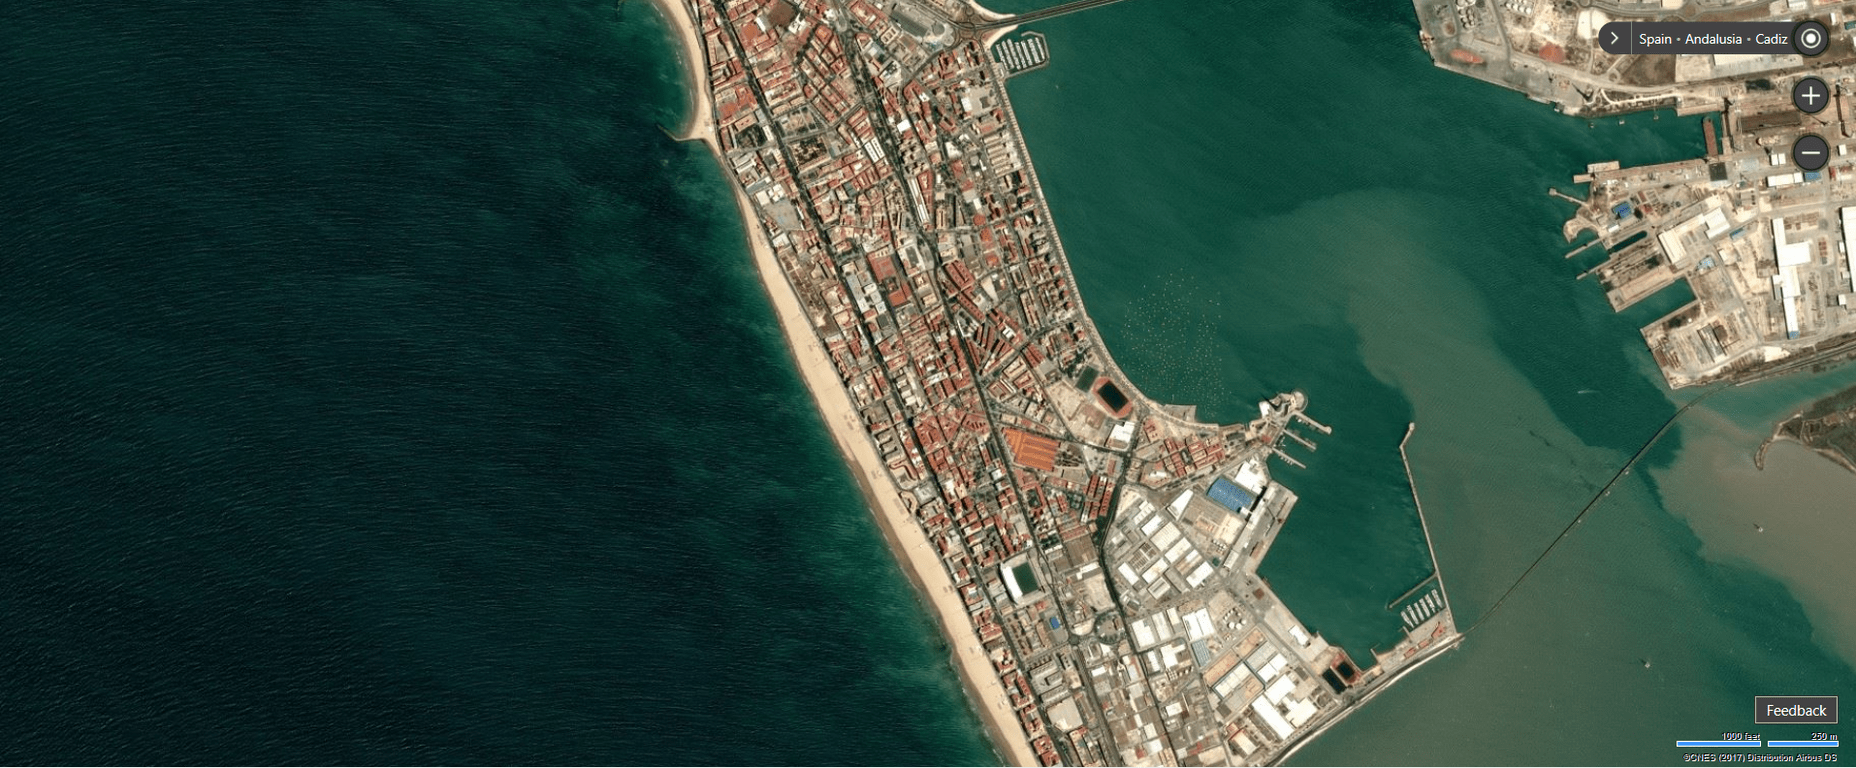 Bing maps adds aerial imagery for 41 cities in spain - onmsft. Com - april 6, 2017